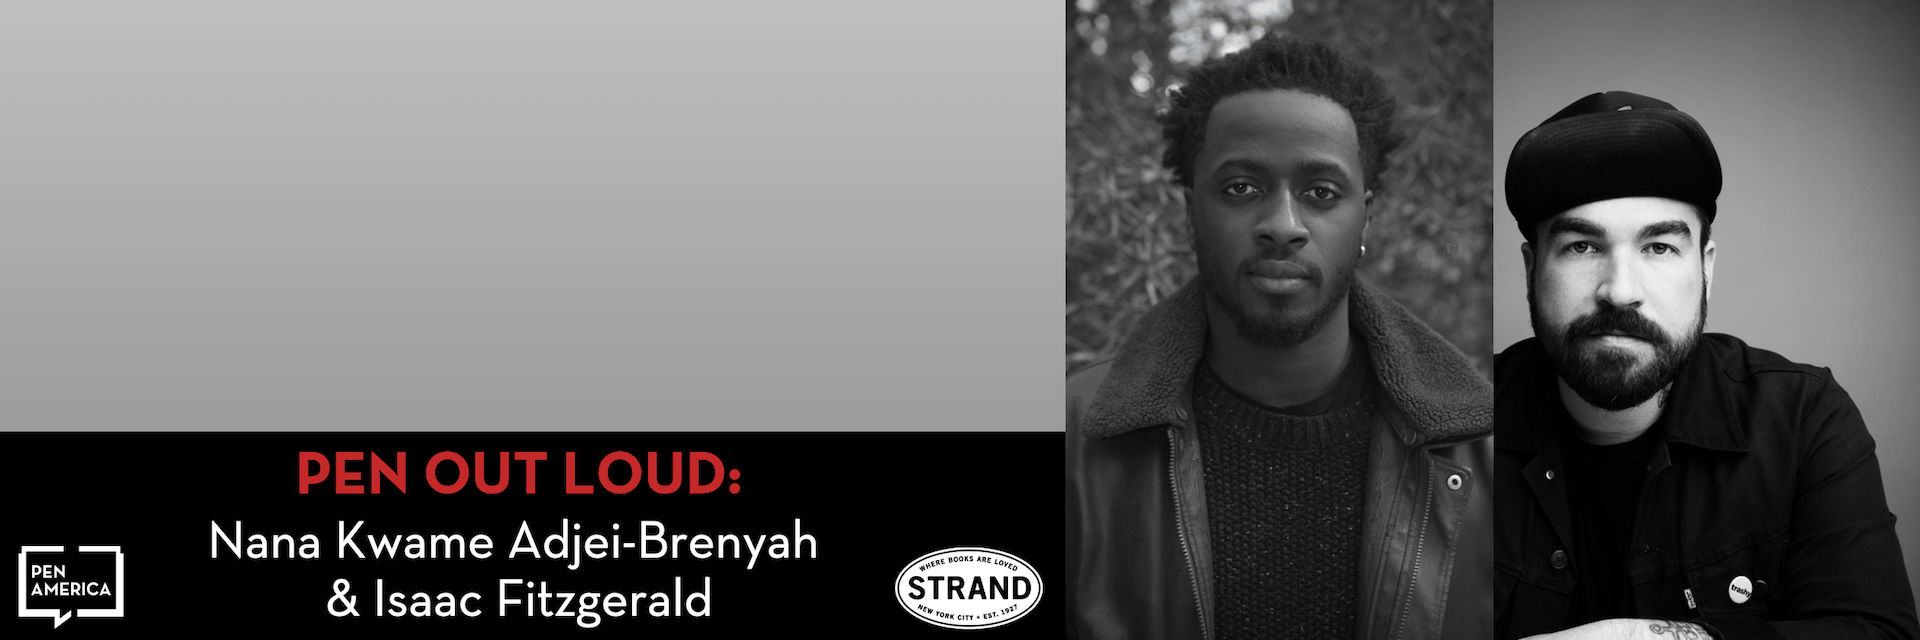 PEN Out Loud: Nana Kwame Adjei-Brenyah and Isaac Fitzgerald